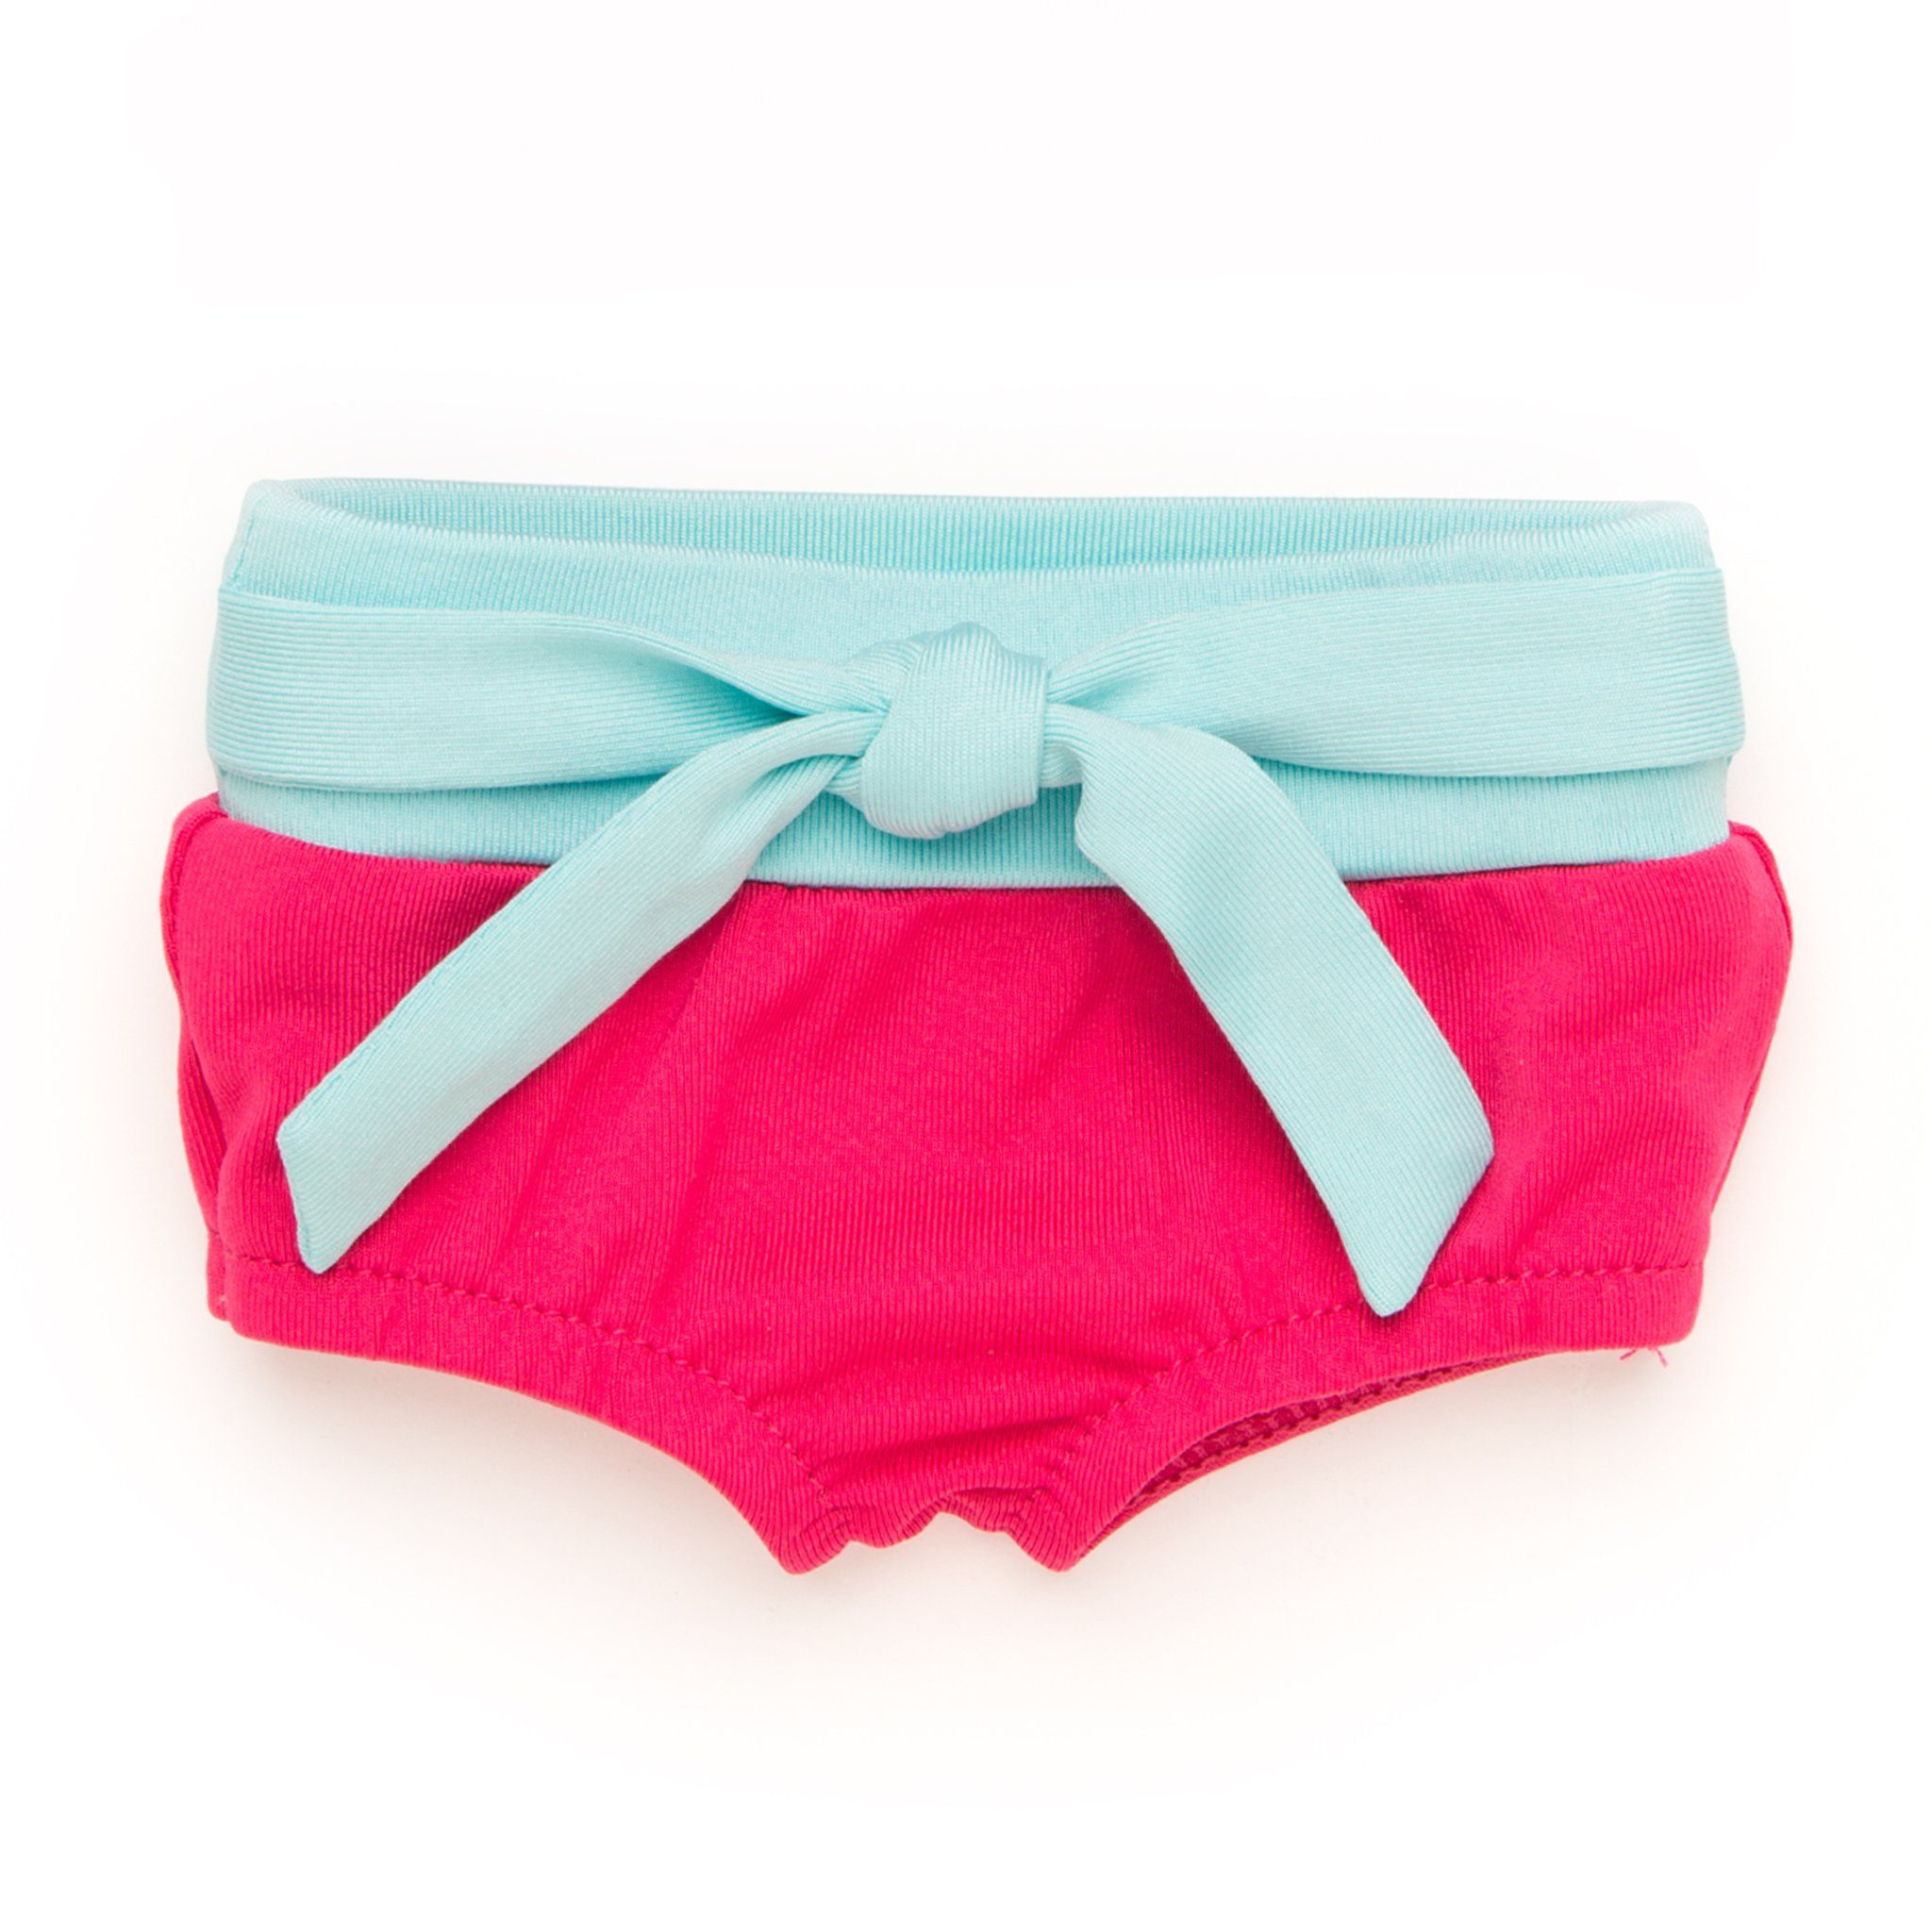 Surf's Up 2-piece bright fuchsia and light teal bathing suit bottoms with tie fits all 18 inch dolls.